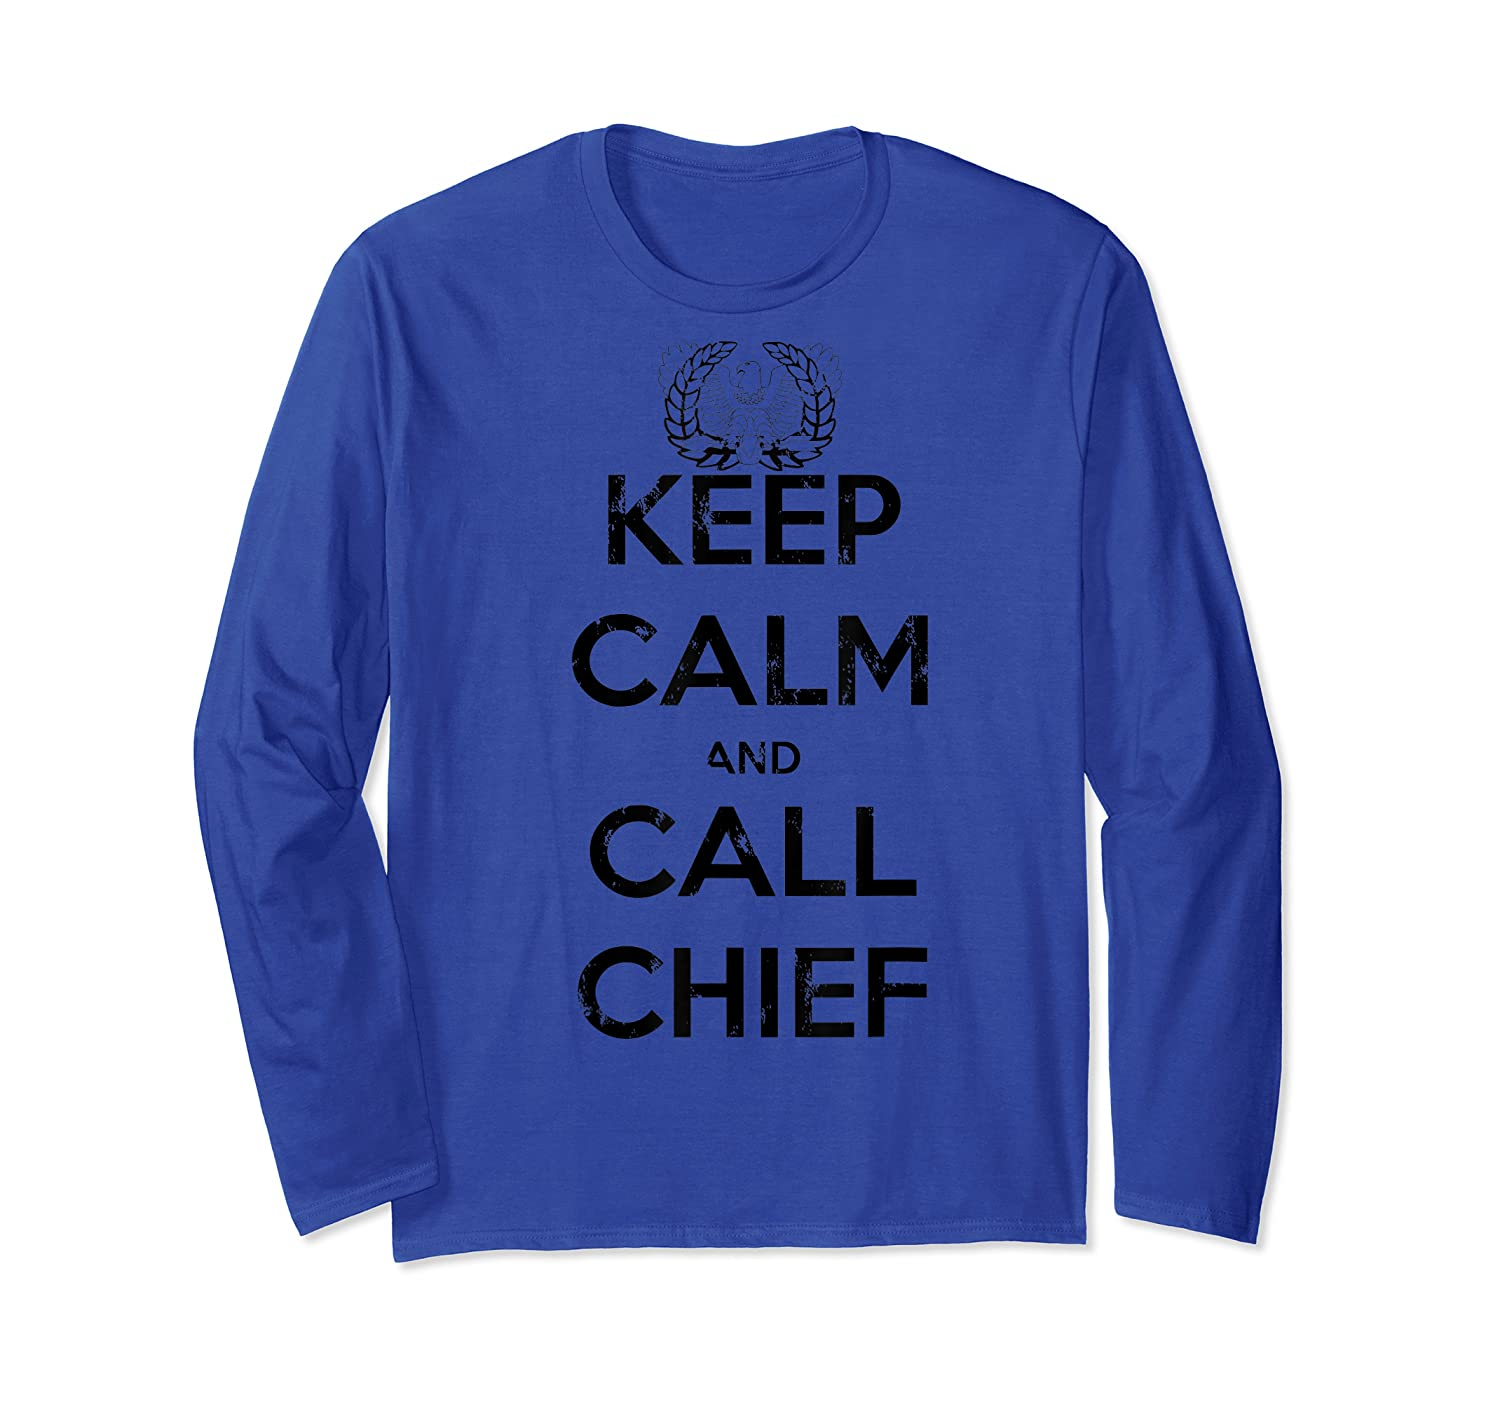 And Call Chief Warrant Officer Corps Eagle Rising Shirts Long Sleeve T-shirt